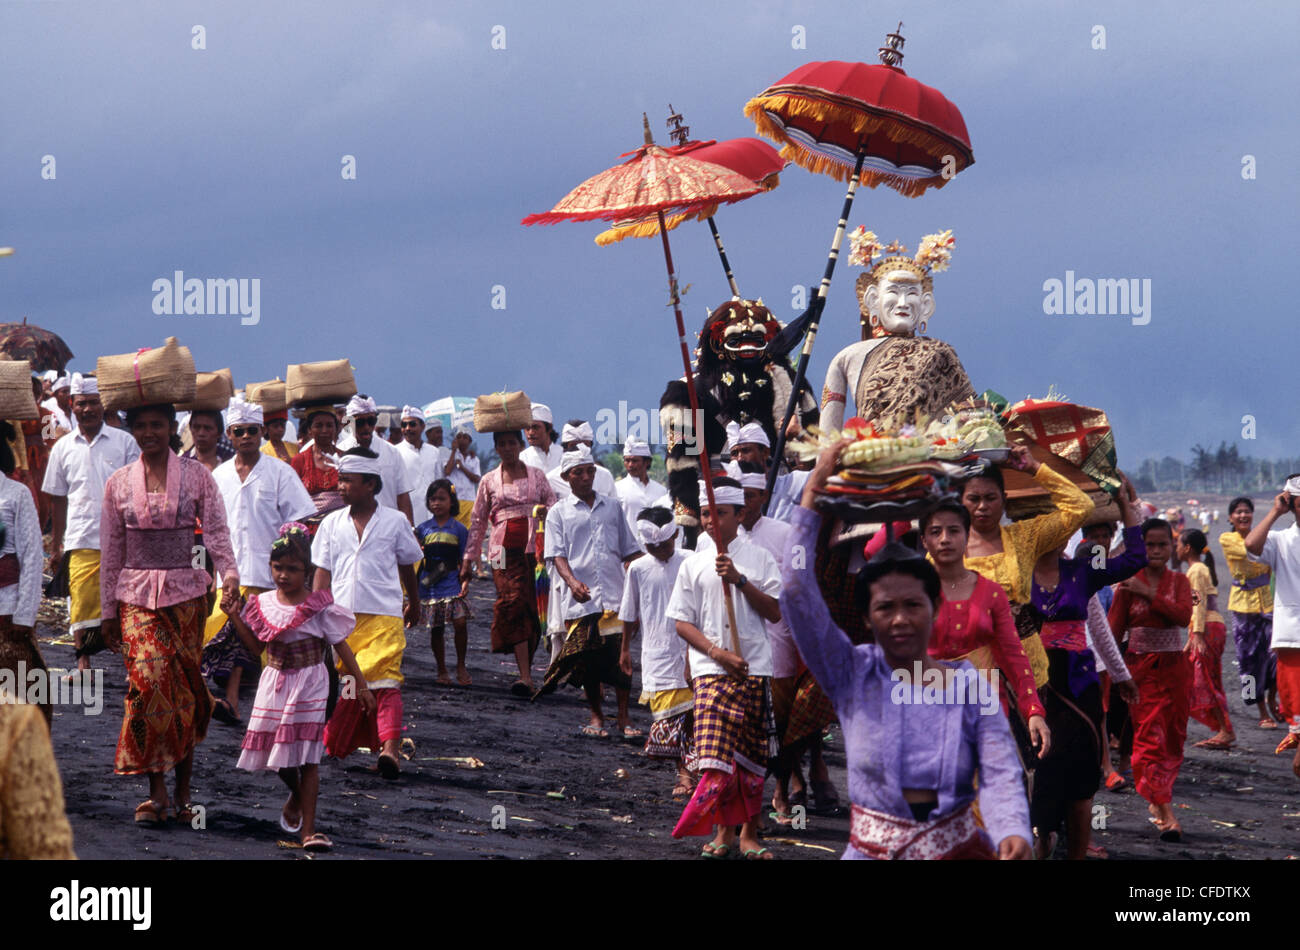 Melasti, a purification ceremony in Bali, Indonesia, Southeast Asia, Asia - Stock Image